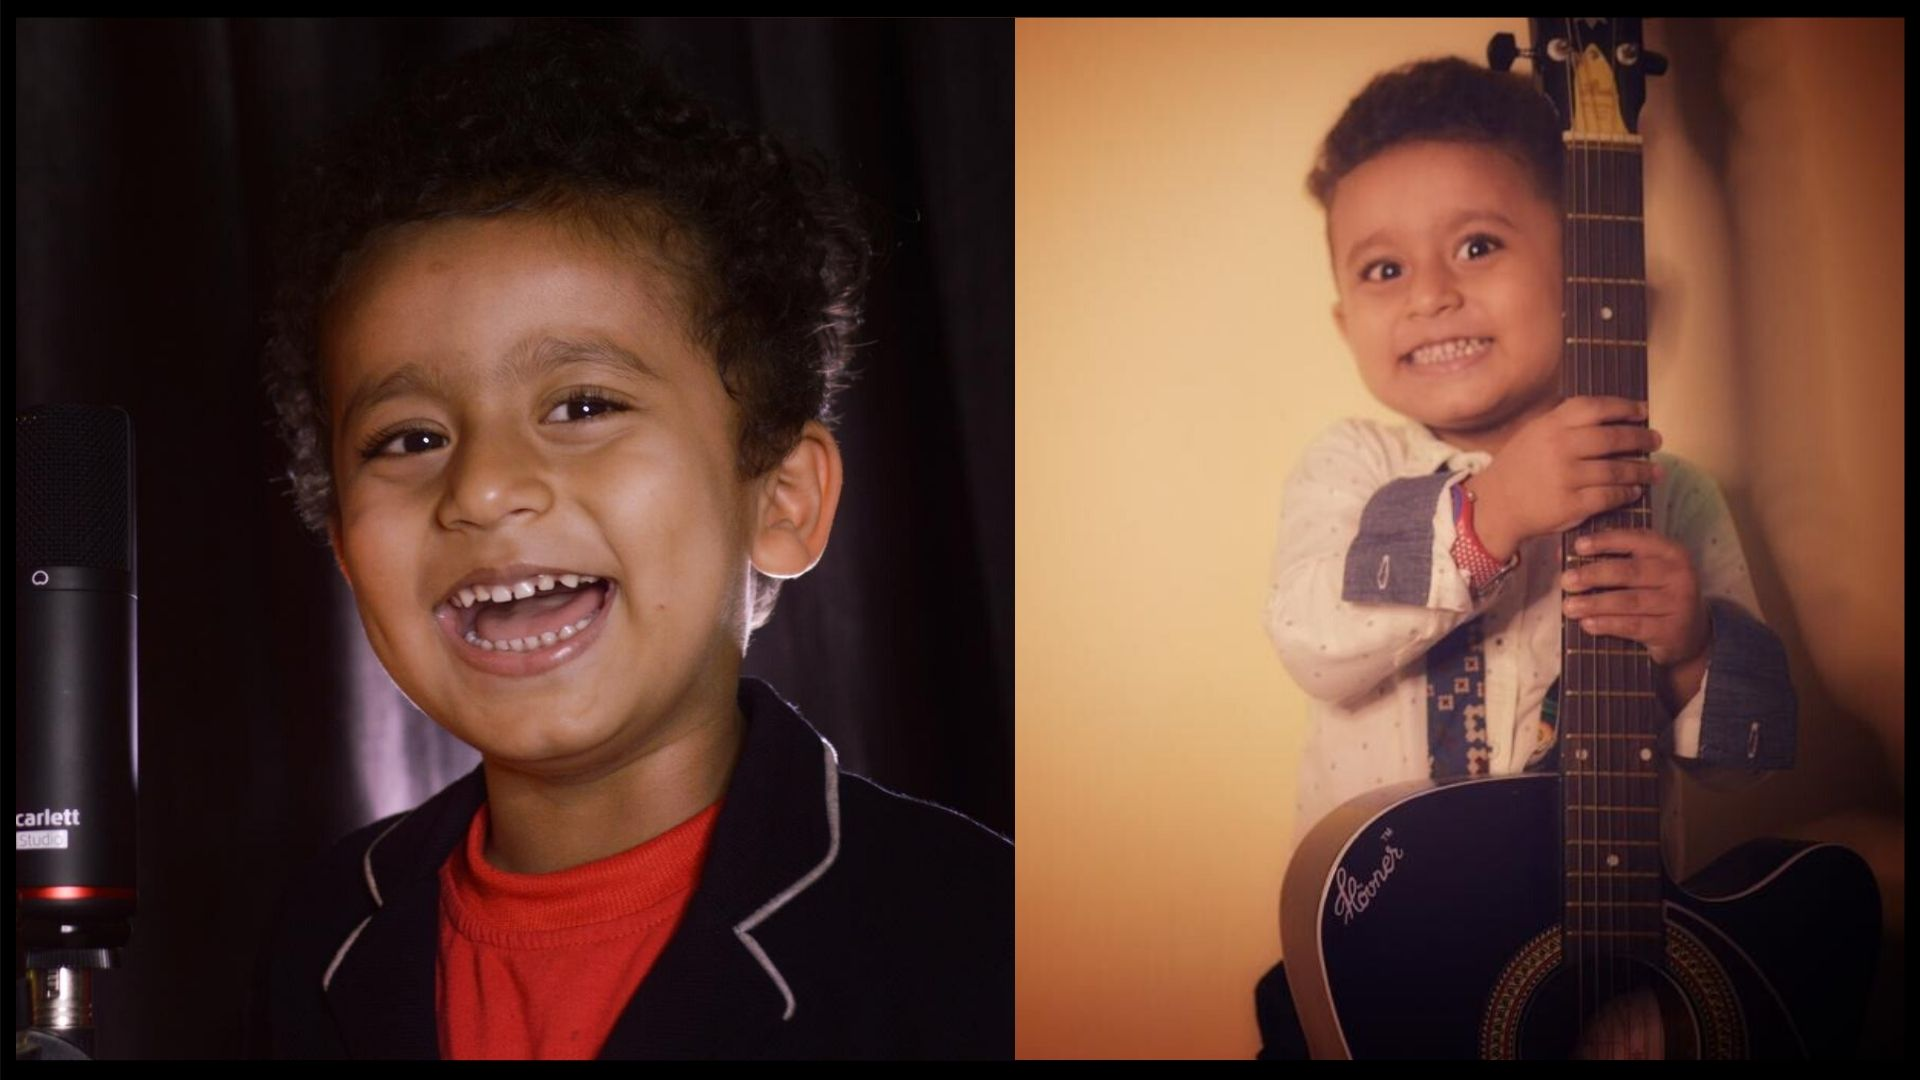 Cutest child who dreams to become a Rock Singer - Here is the story of a 3 yr old kid Dhritishman Chakraborty